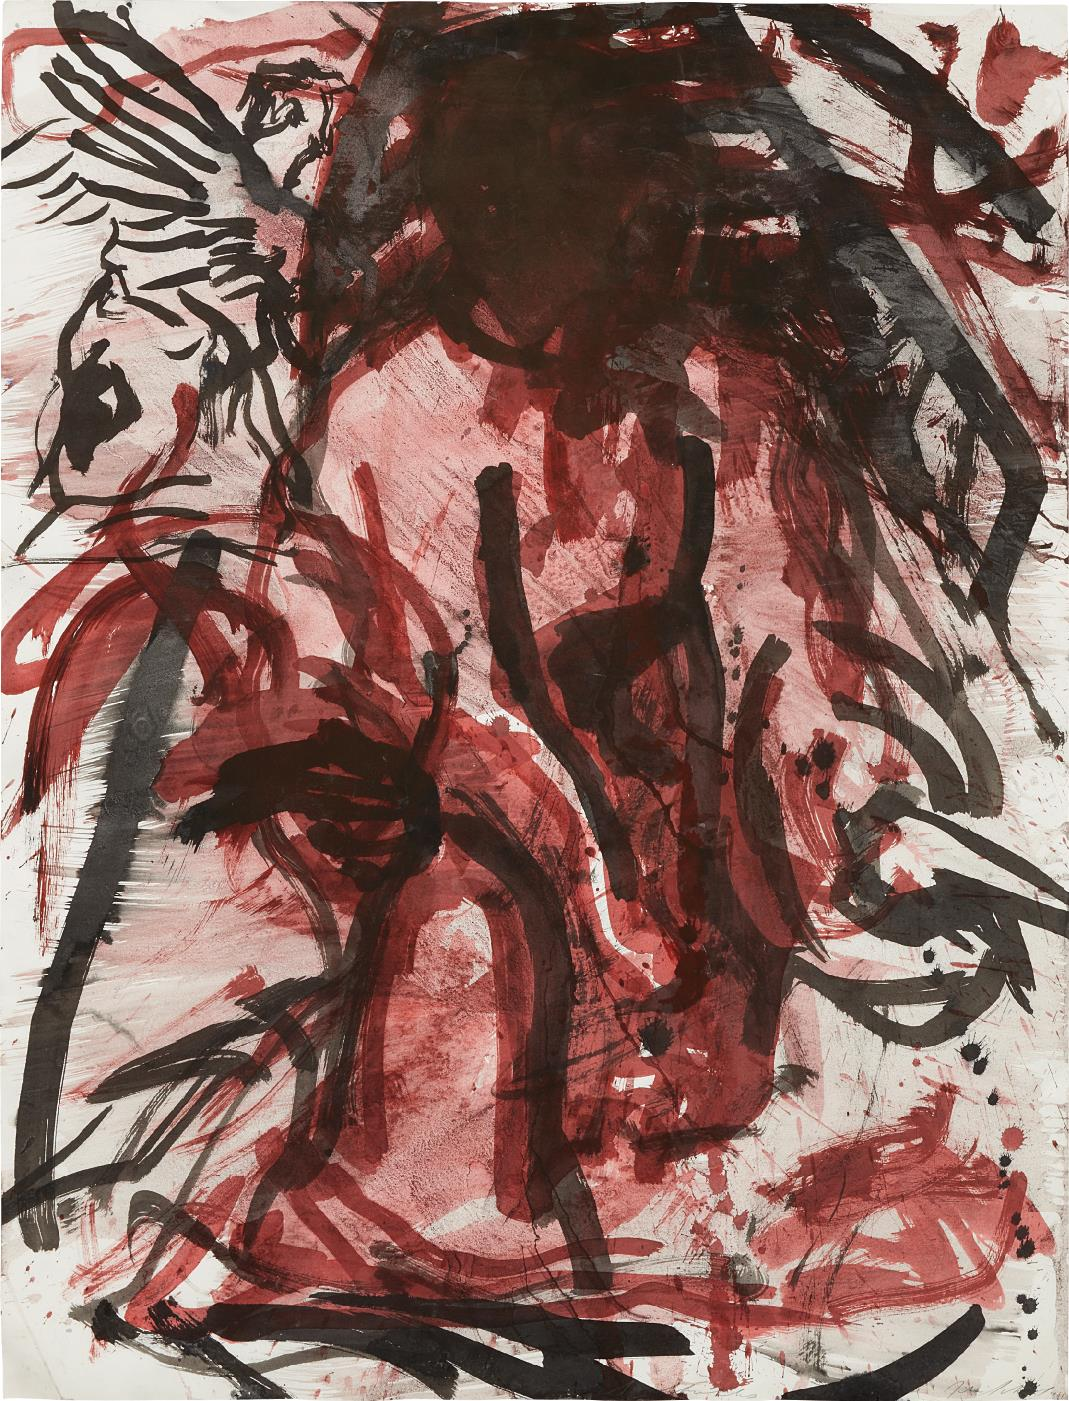 Julian Schnabel-Untitled (Agony in the Garden)-1981